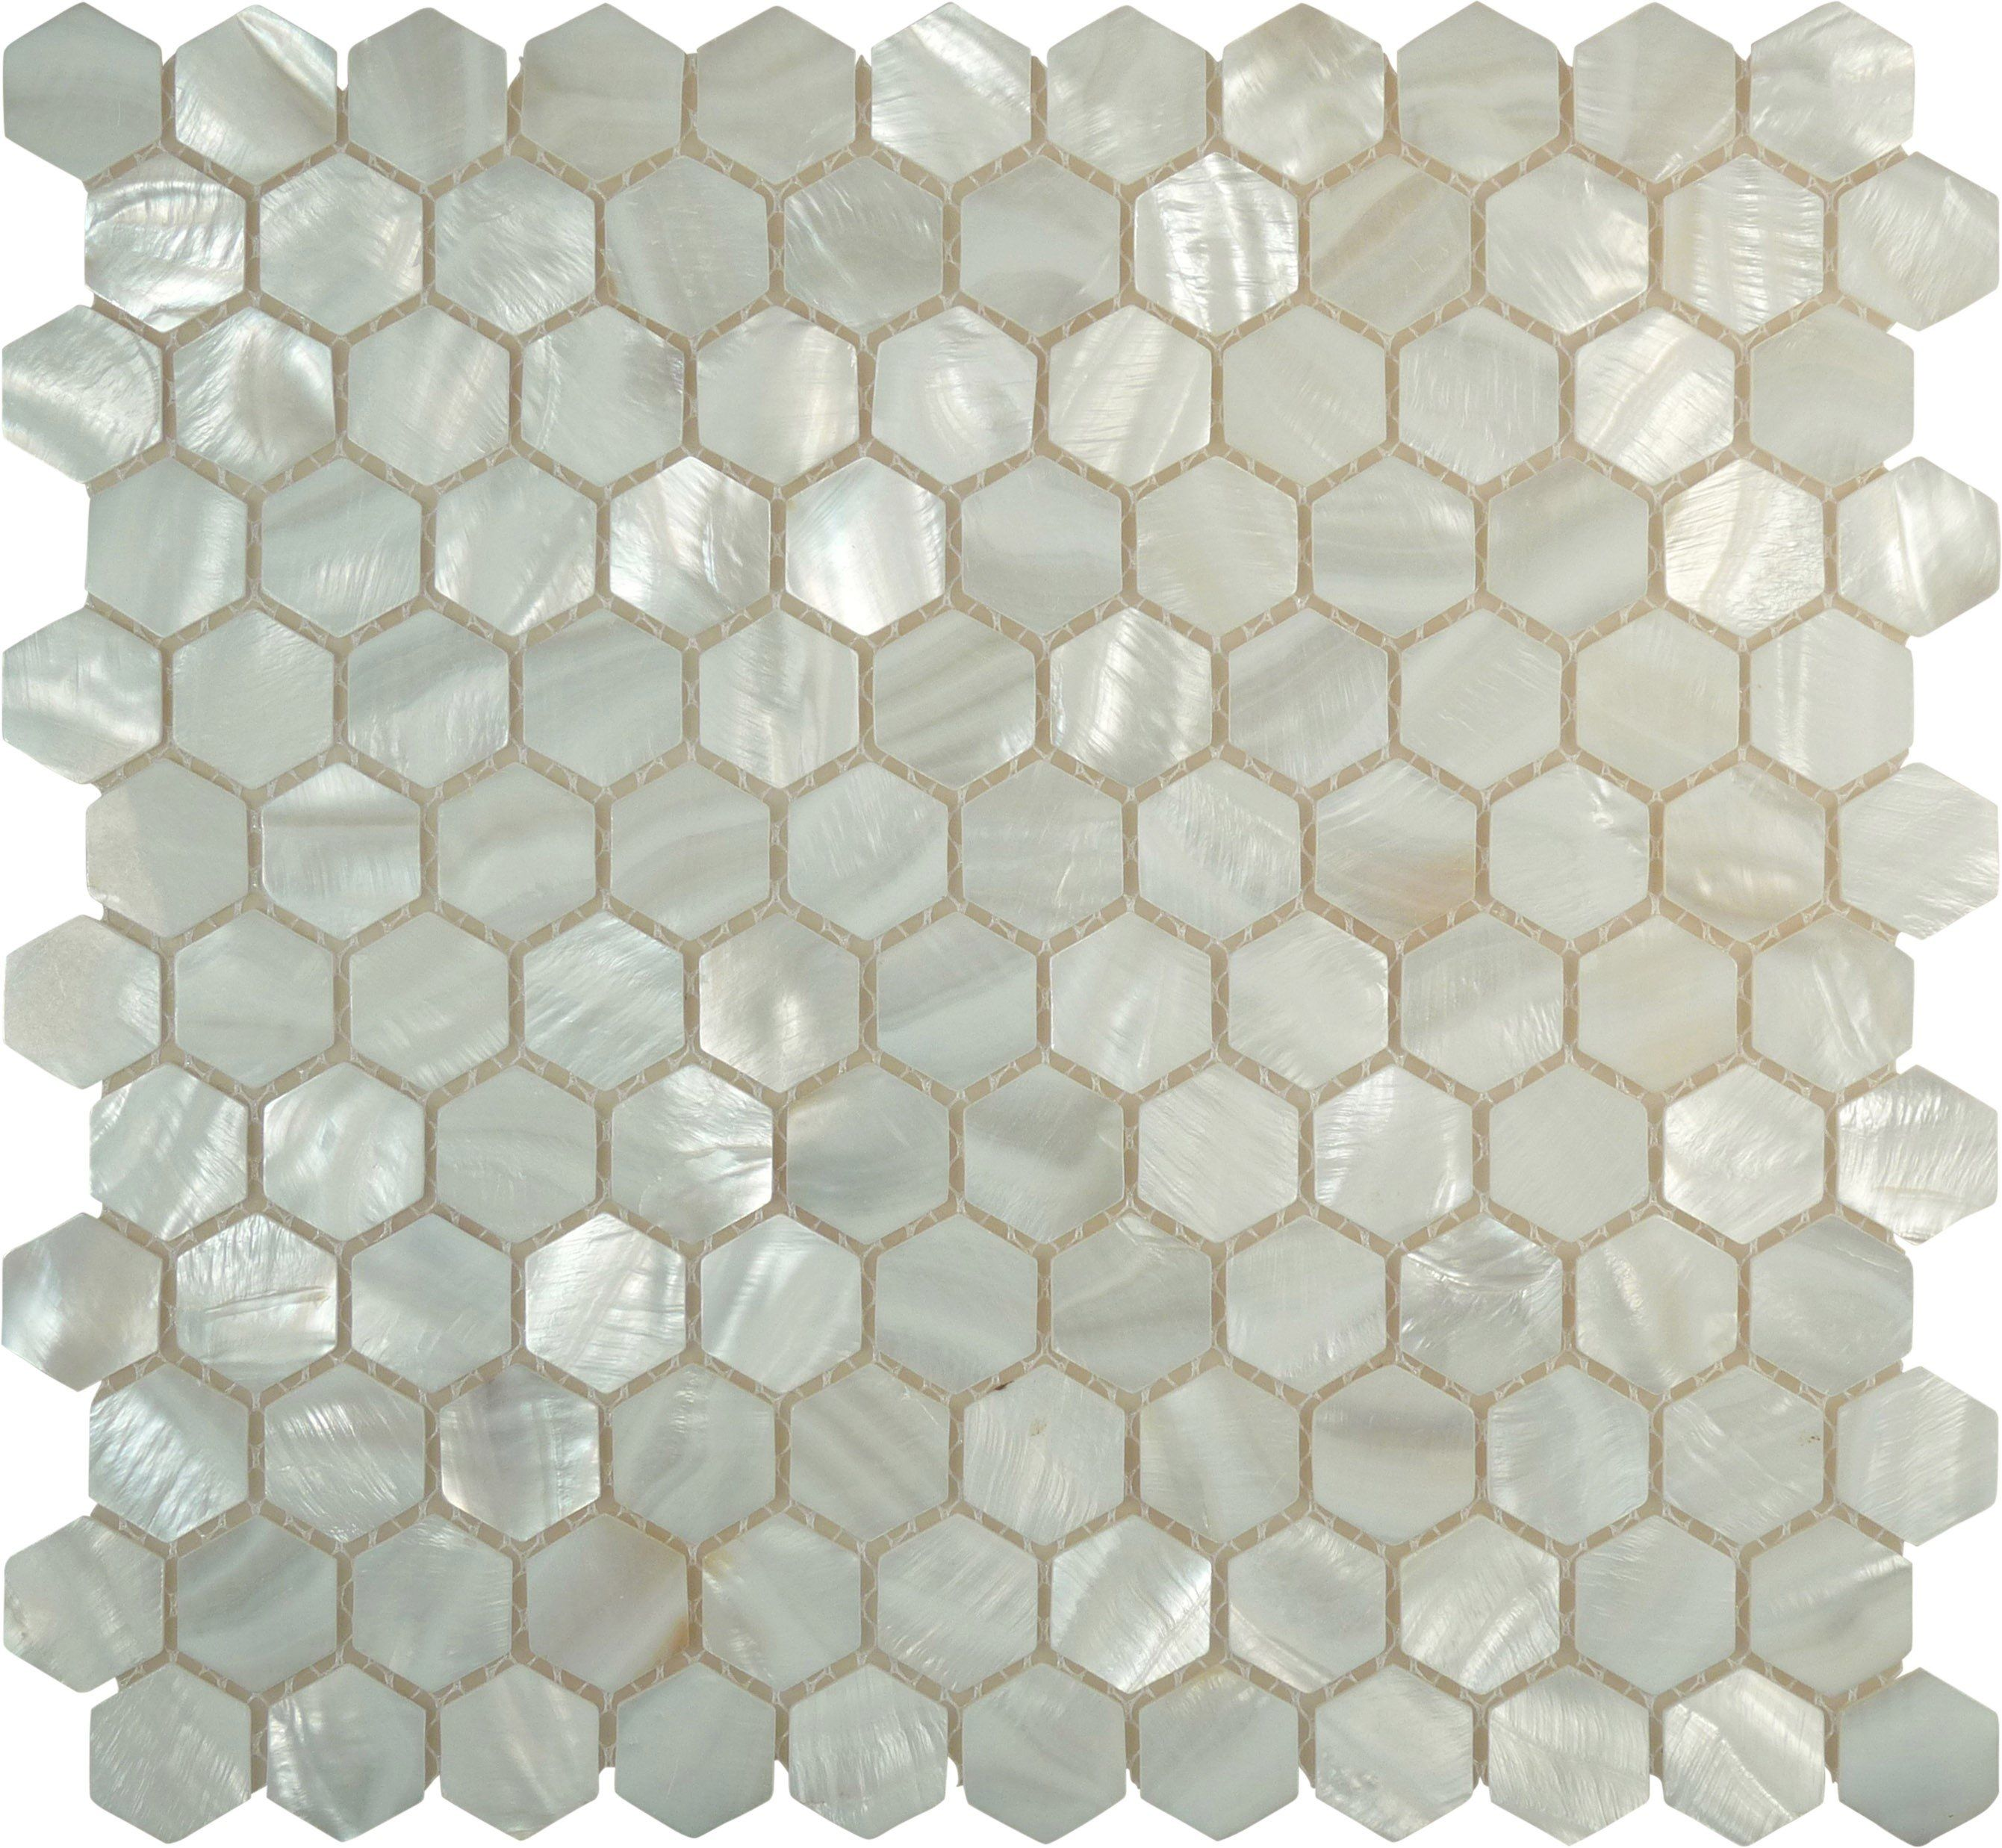 Sheet Size 11 X 11 1 2 Tile Size 1 X 1 Tile Thickness 1 8 Nominal Grout Joints 1 8 Sheet Mount Mesh Backed Pearl Tile Hexagon Tiles Shell Tiles